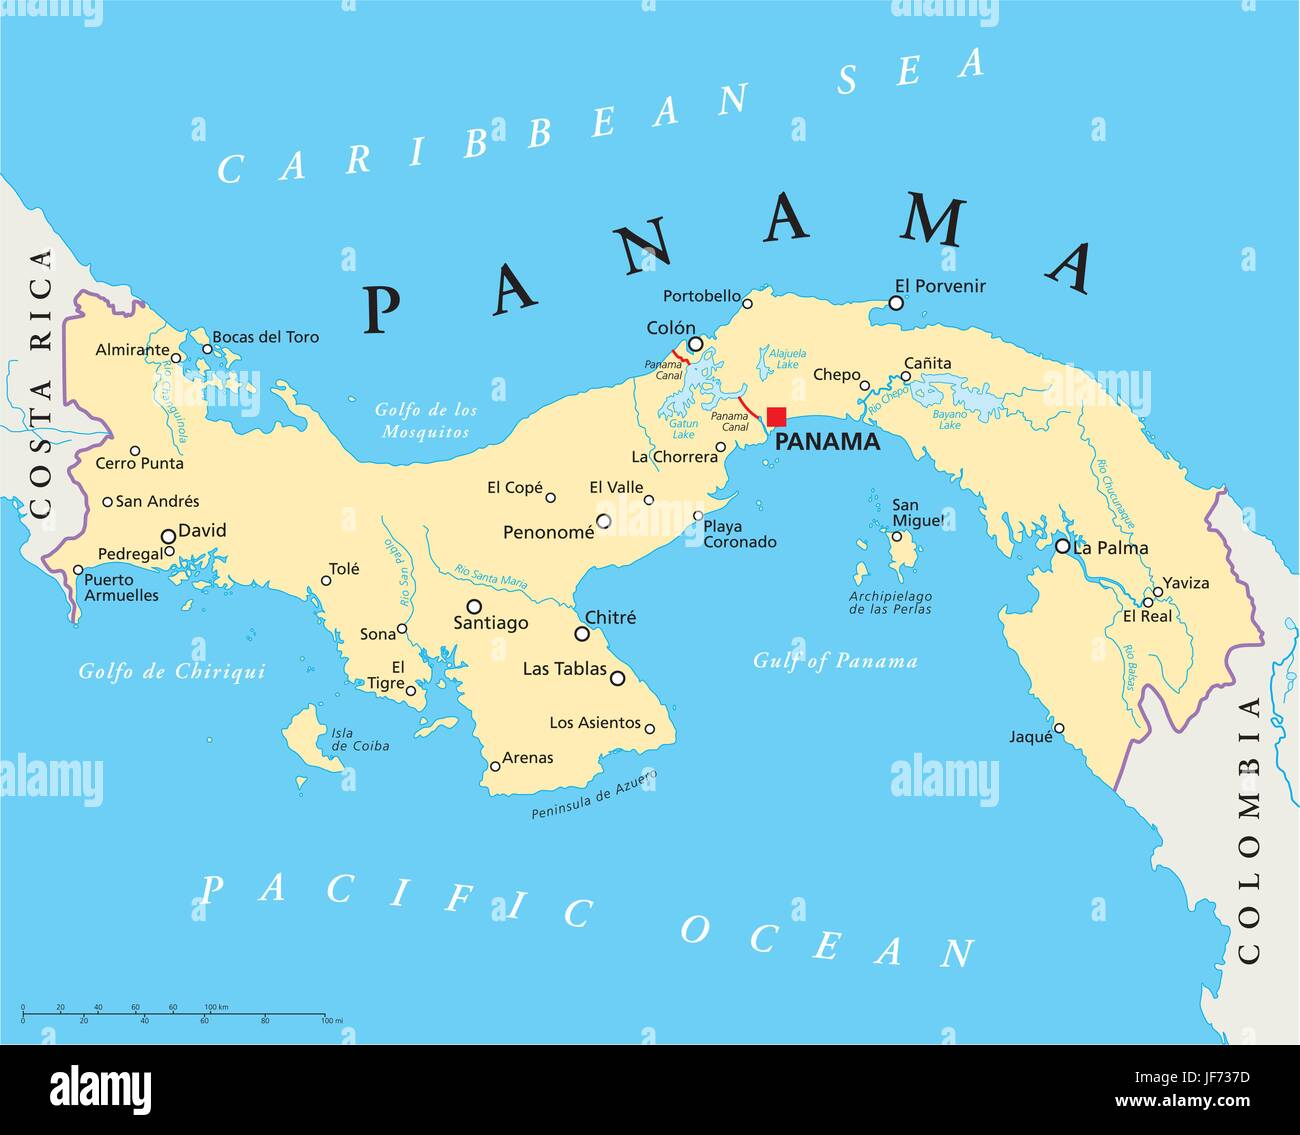 Route Panama Canal Map Shipping Atlas Map Of The World - World map panama